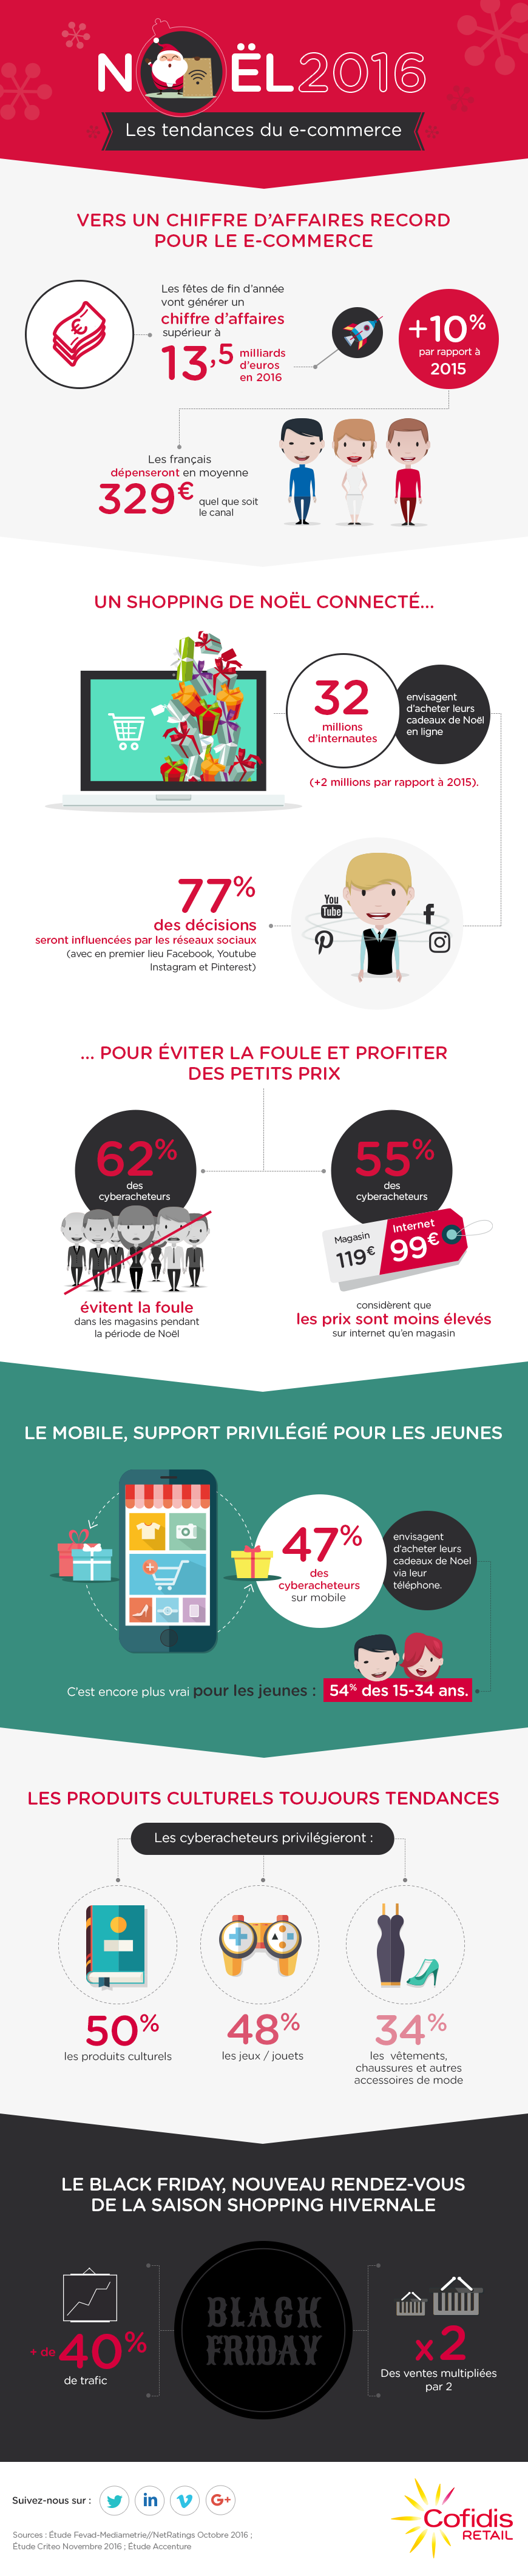 Infographie chiffres Noel 2016